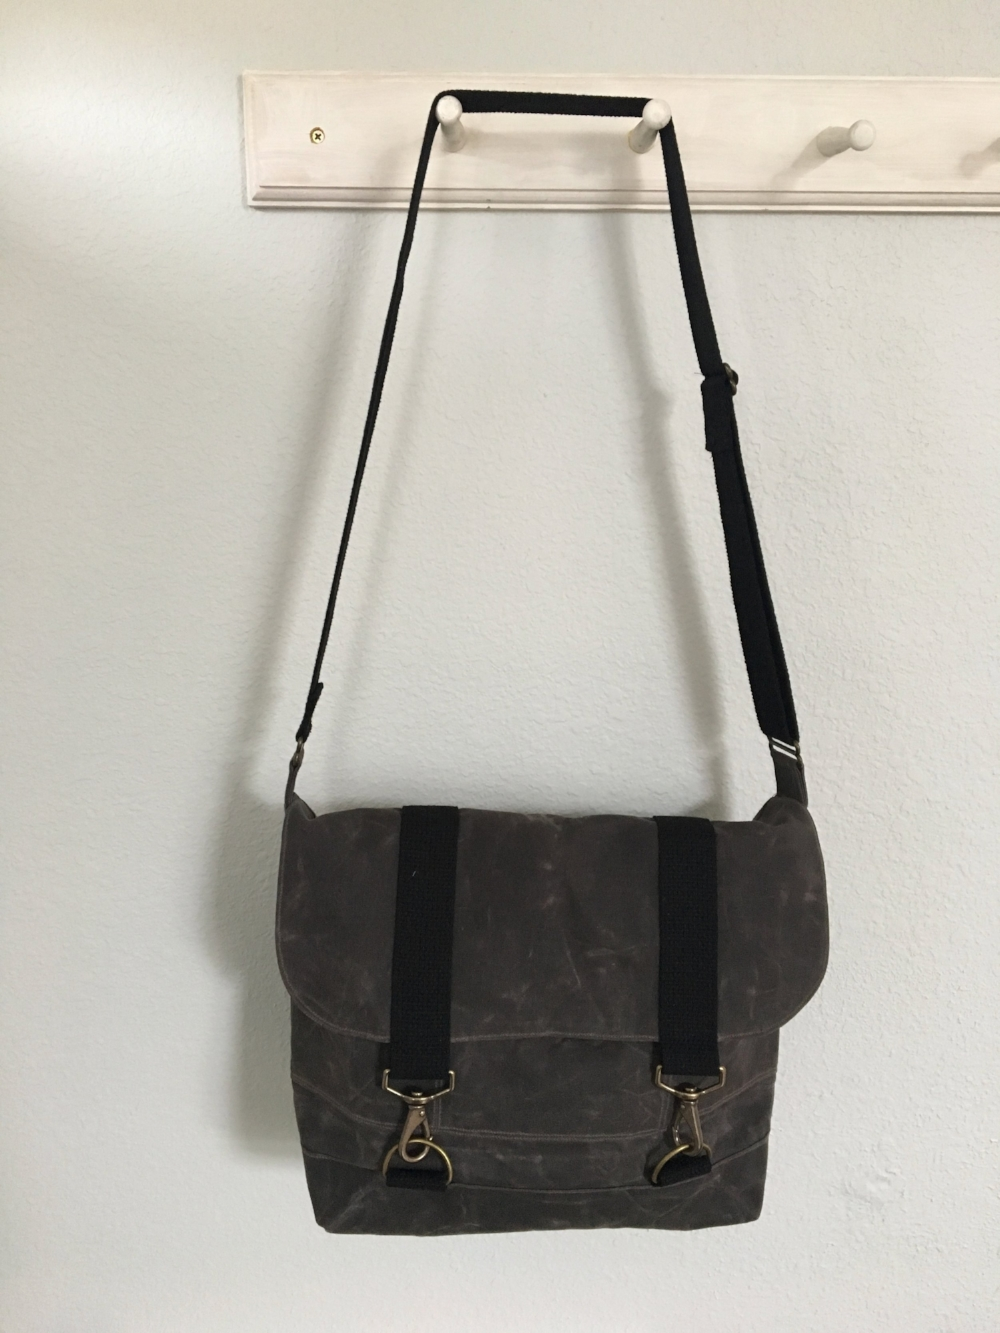 McGregor Tote in Chocolate waxed canvas